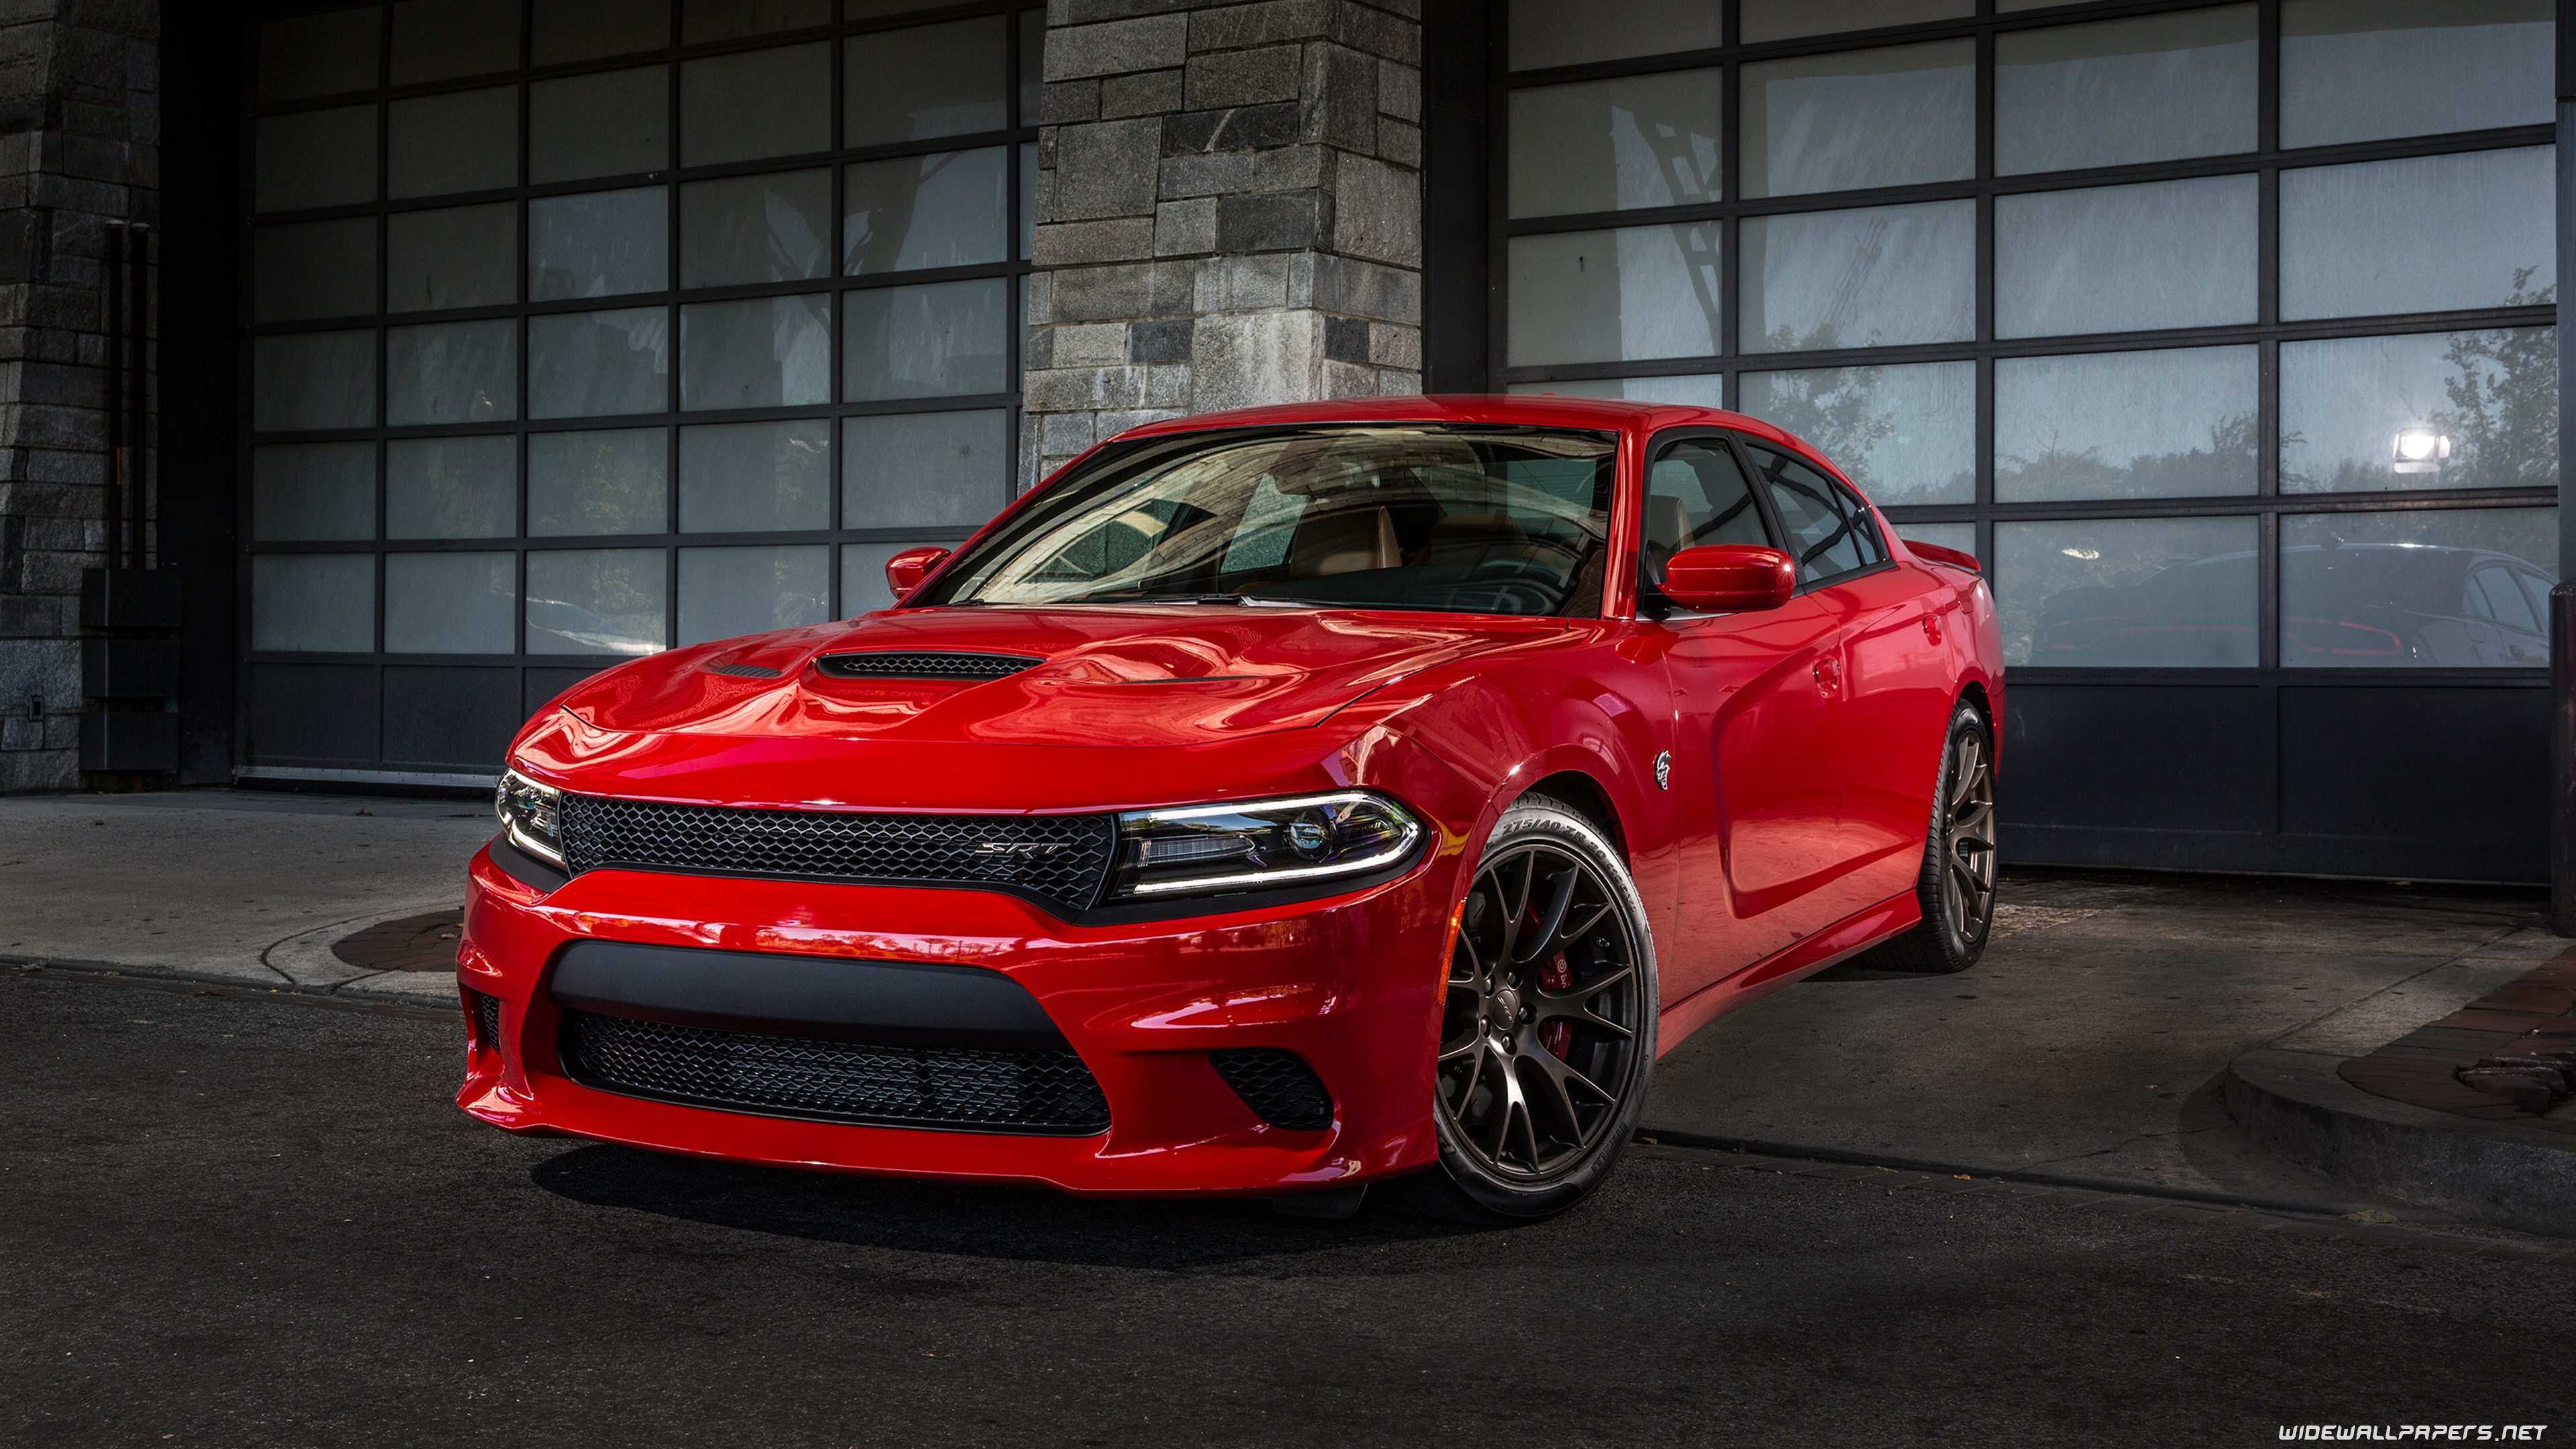 Dodge Charger Cars Desktop Wallpapers 4k Ultra Hd